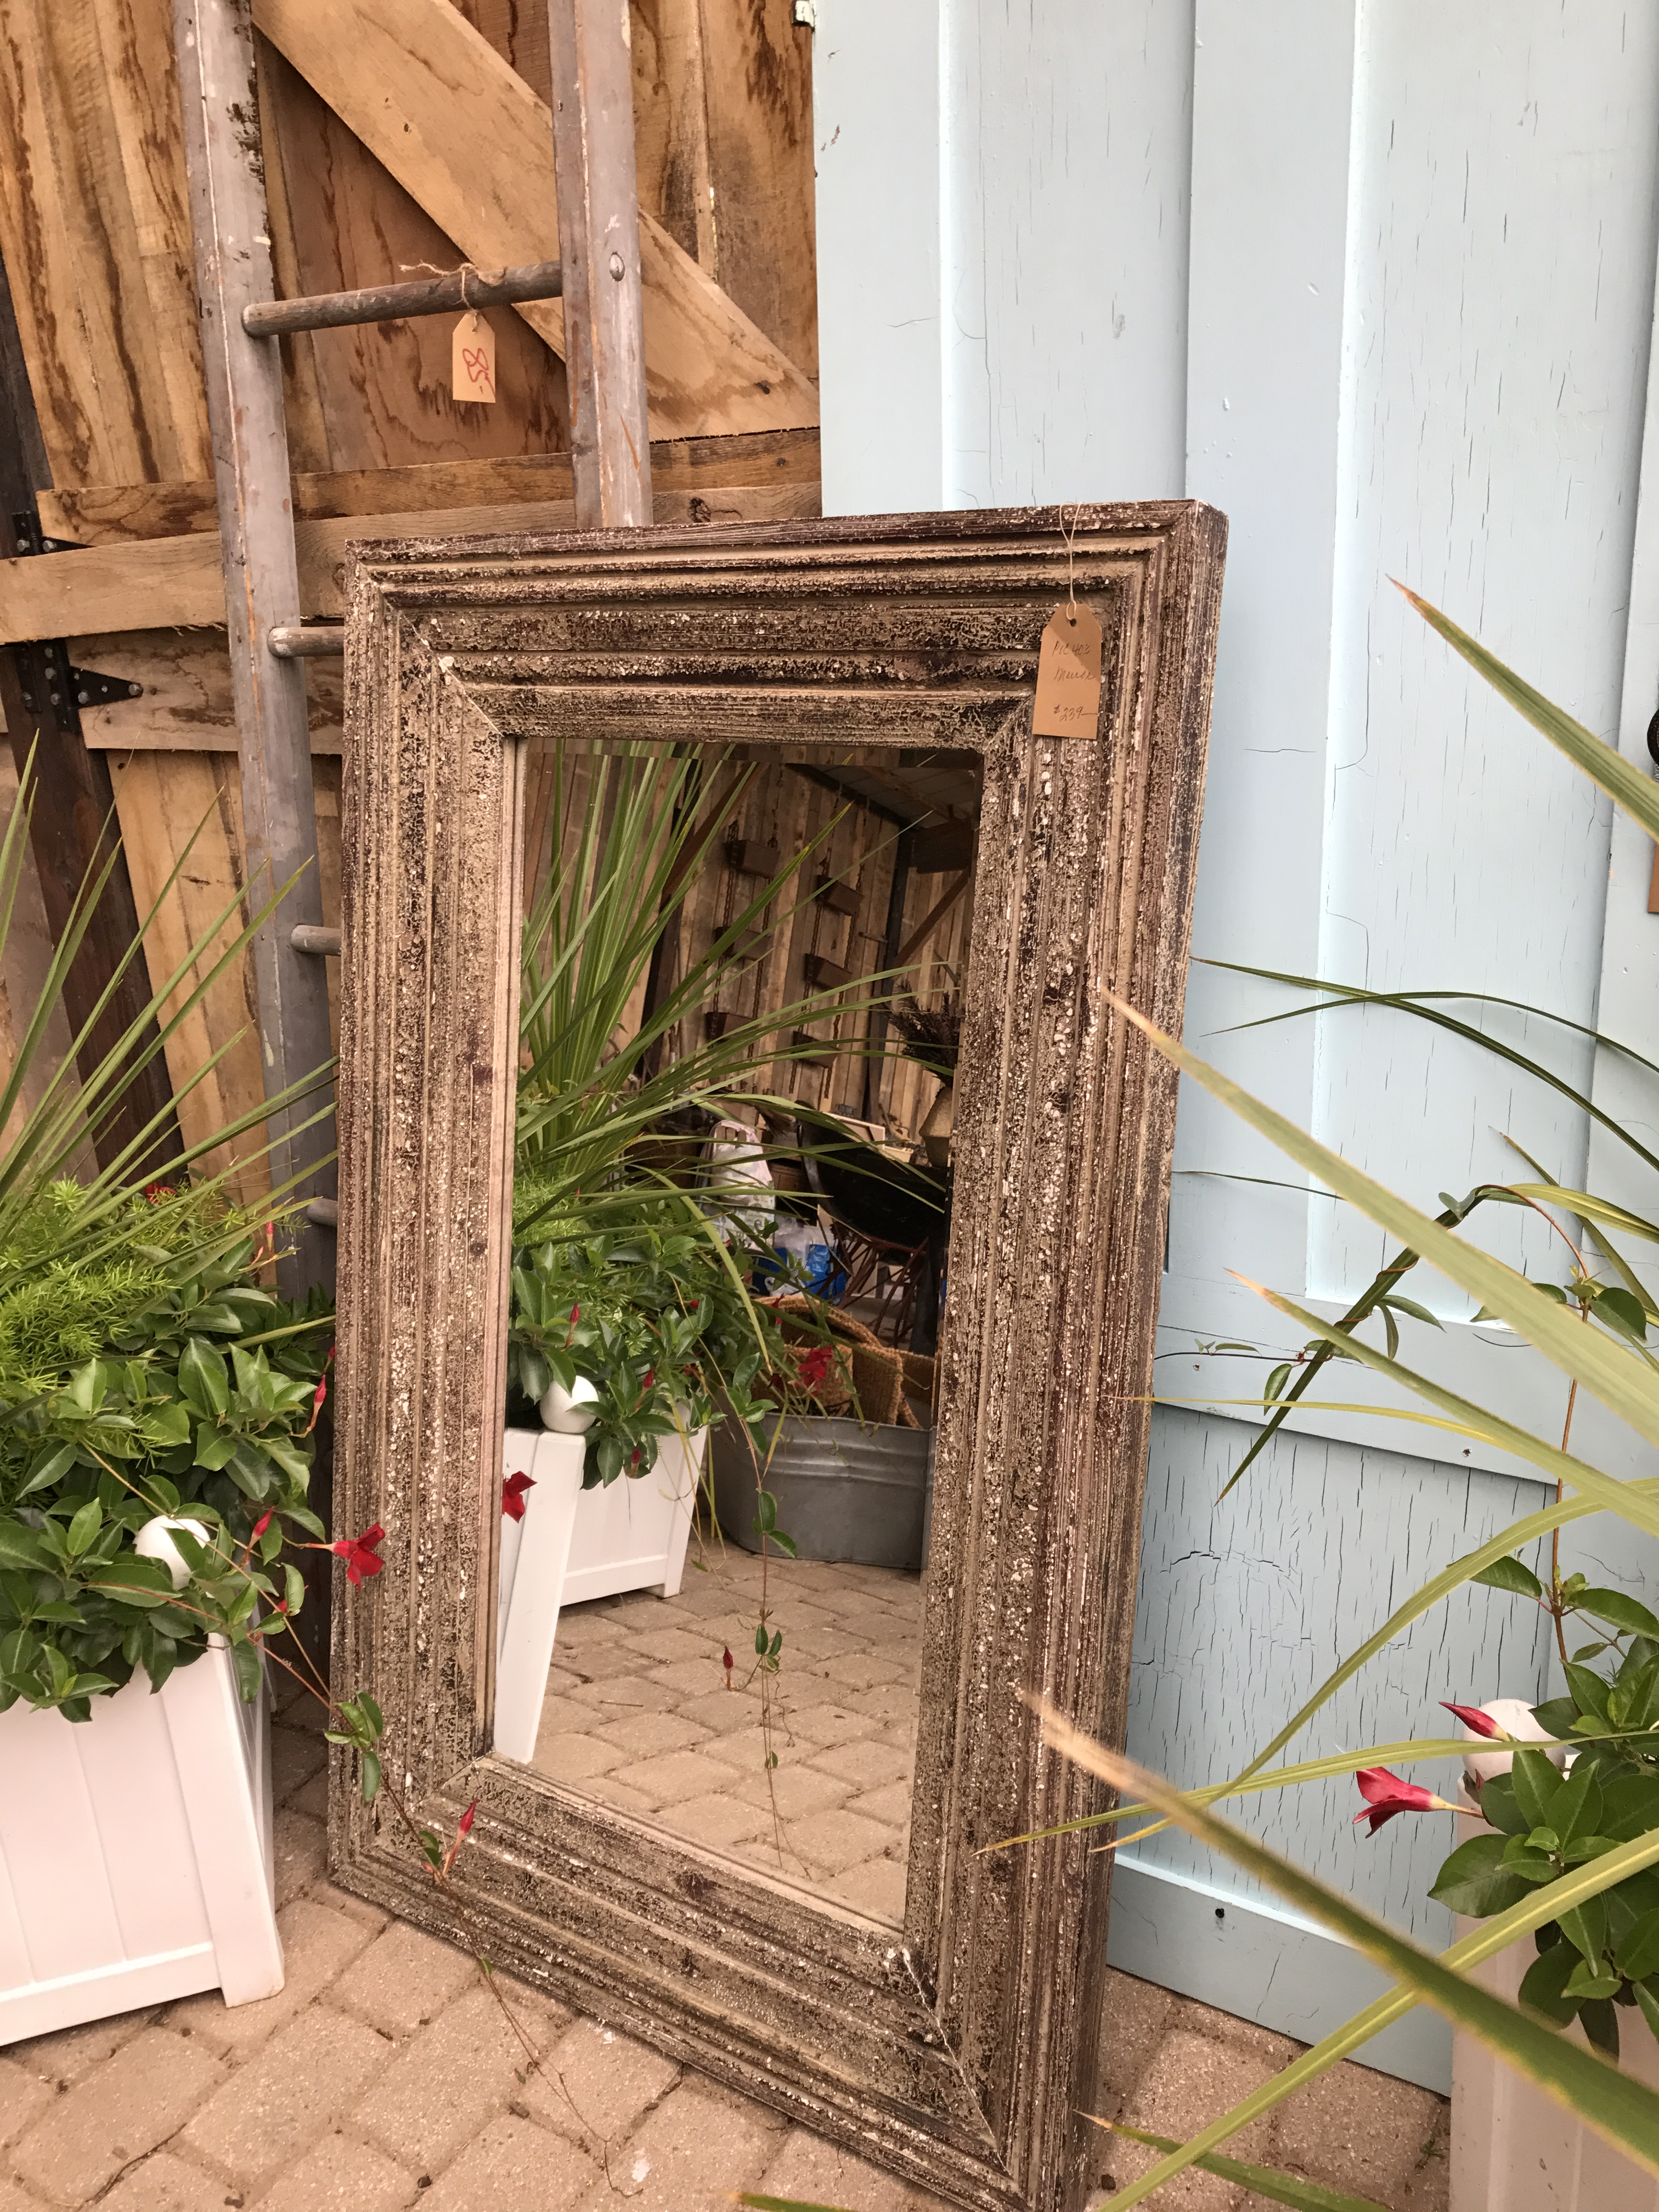 I Passed On The Cool Mirror But Bought The Blue Door.